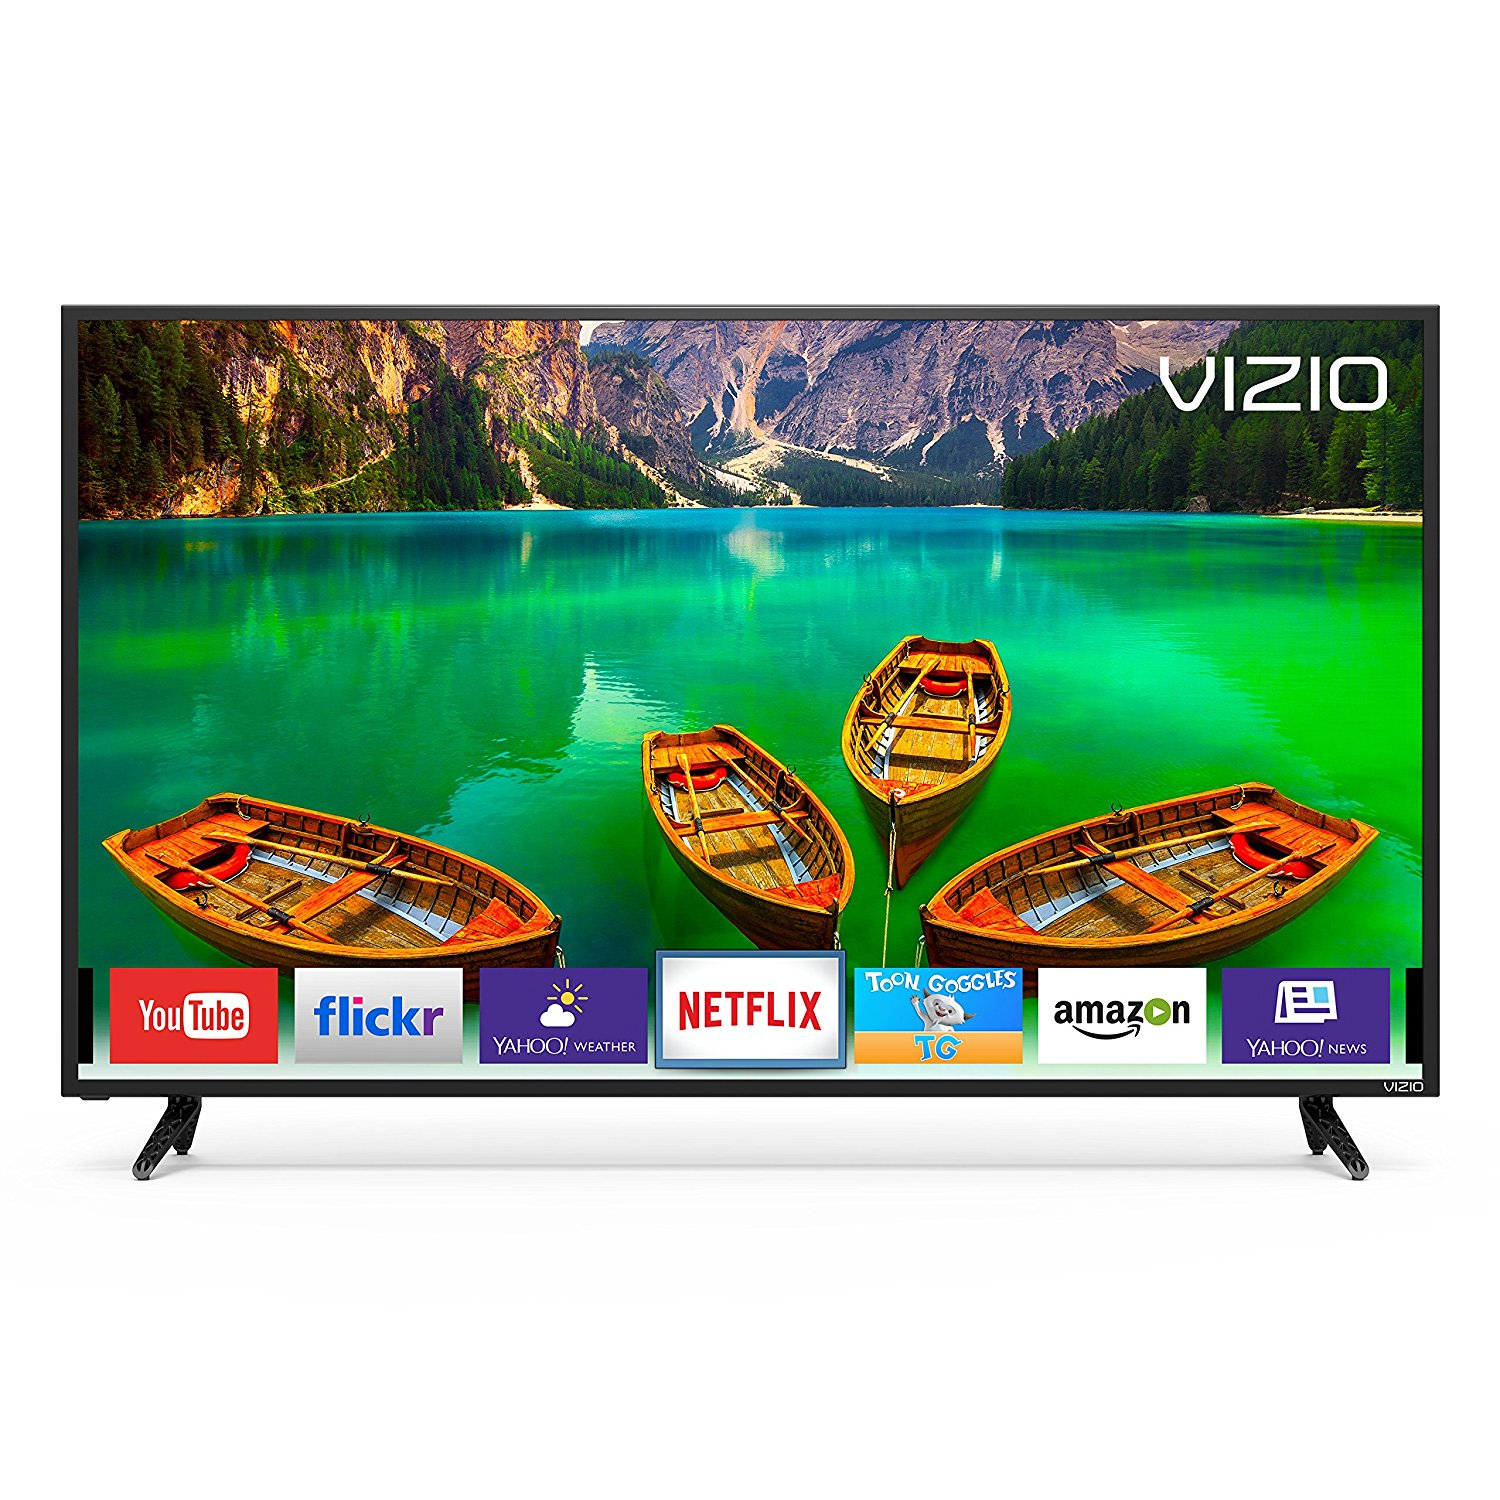 An image related to VIZIO D D50-E1 50-Inch 4K LED 120Hz TV